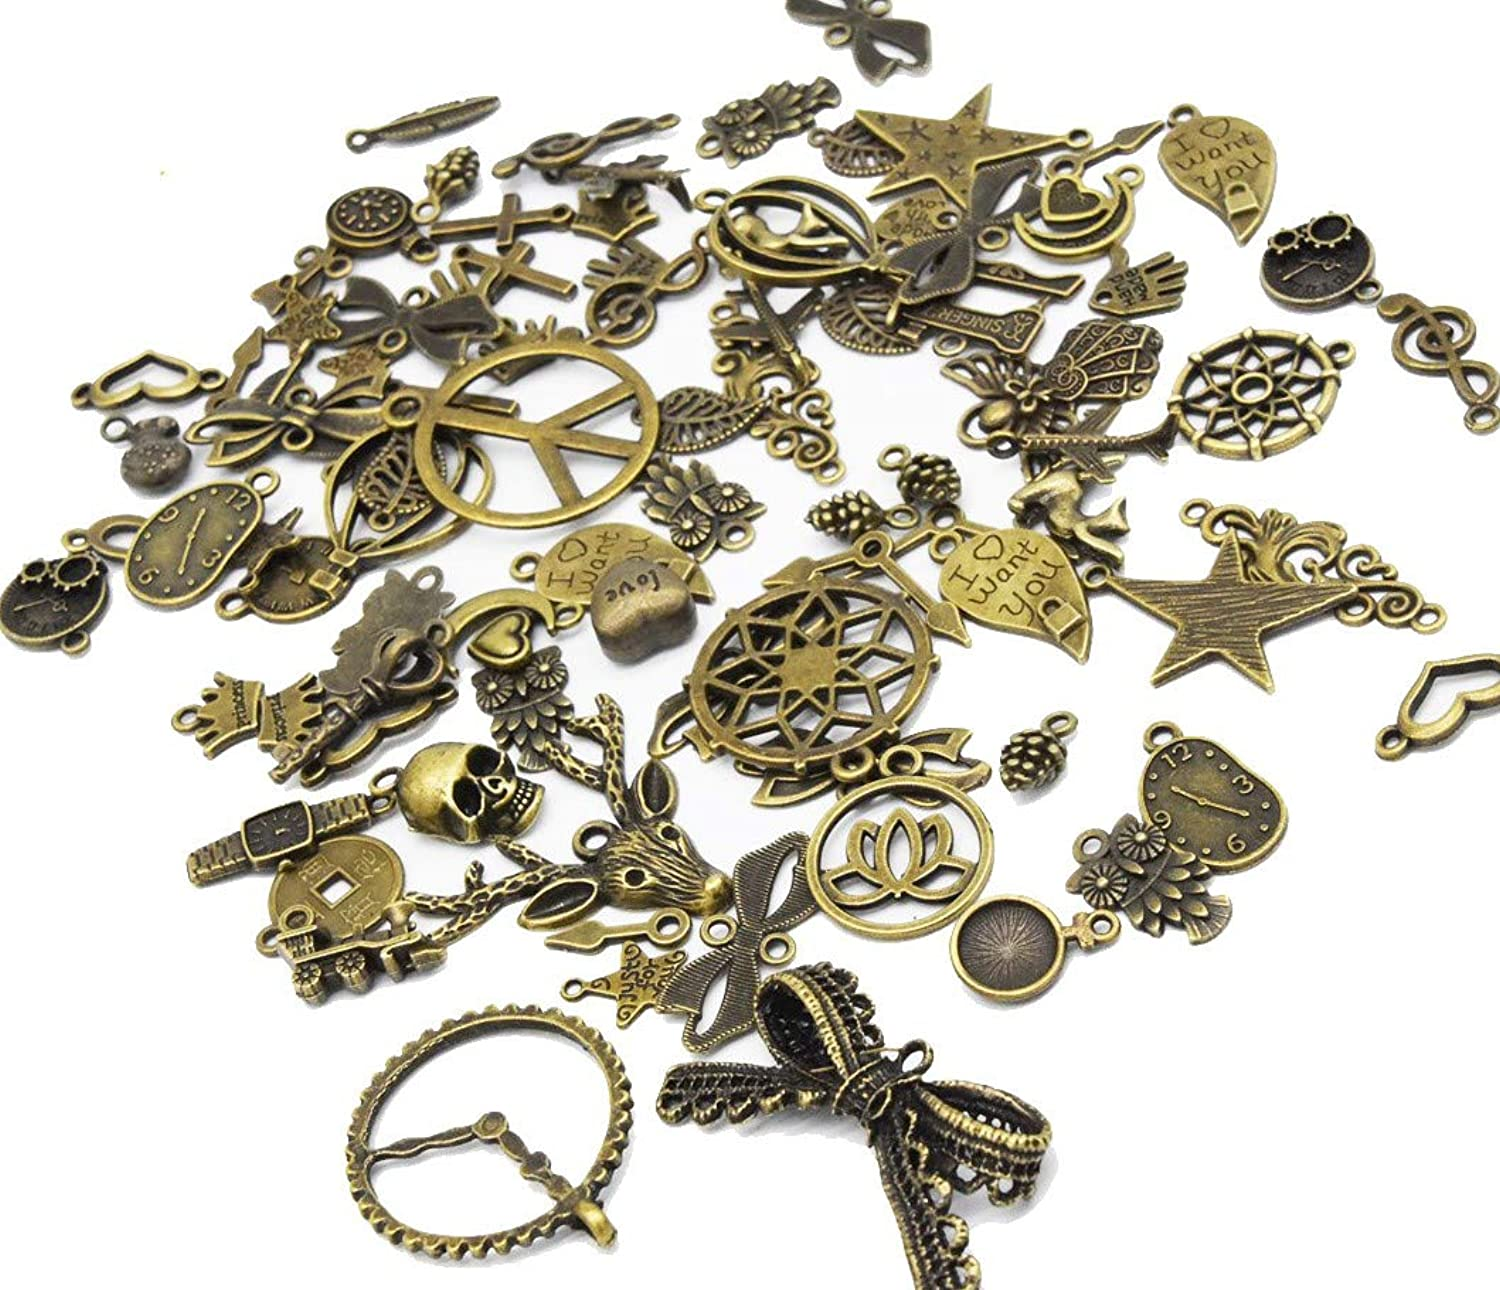 Youkwer 100 Gram(Approx 80pcs) Assorted DIY Antique Mixed Charms Pendants Punk Accessories for DIY Crafting and Jewelry Making Bronze